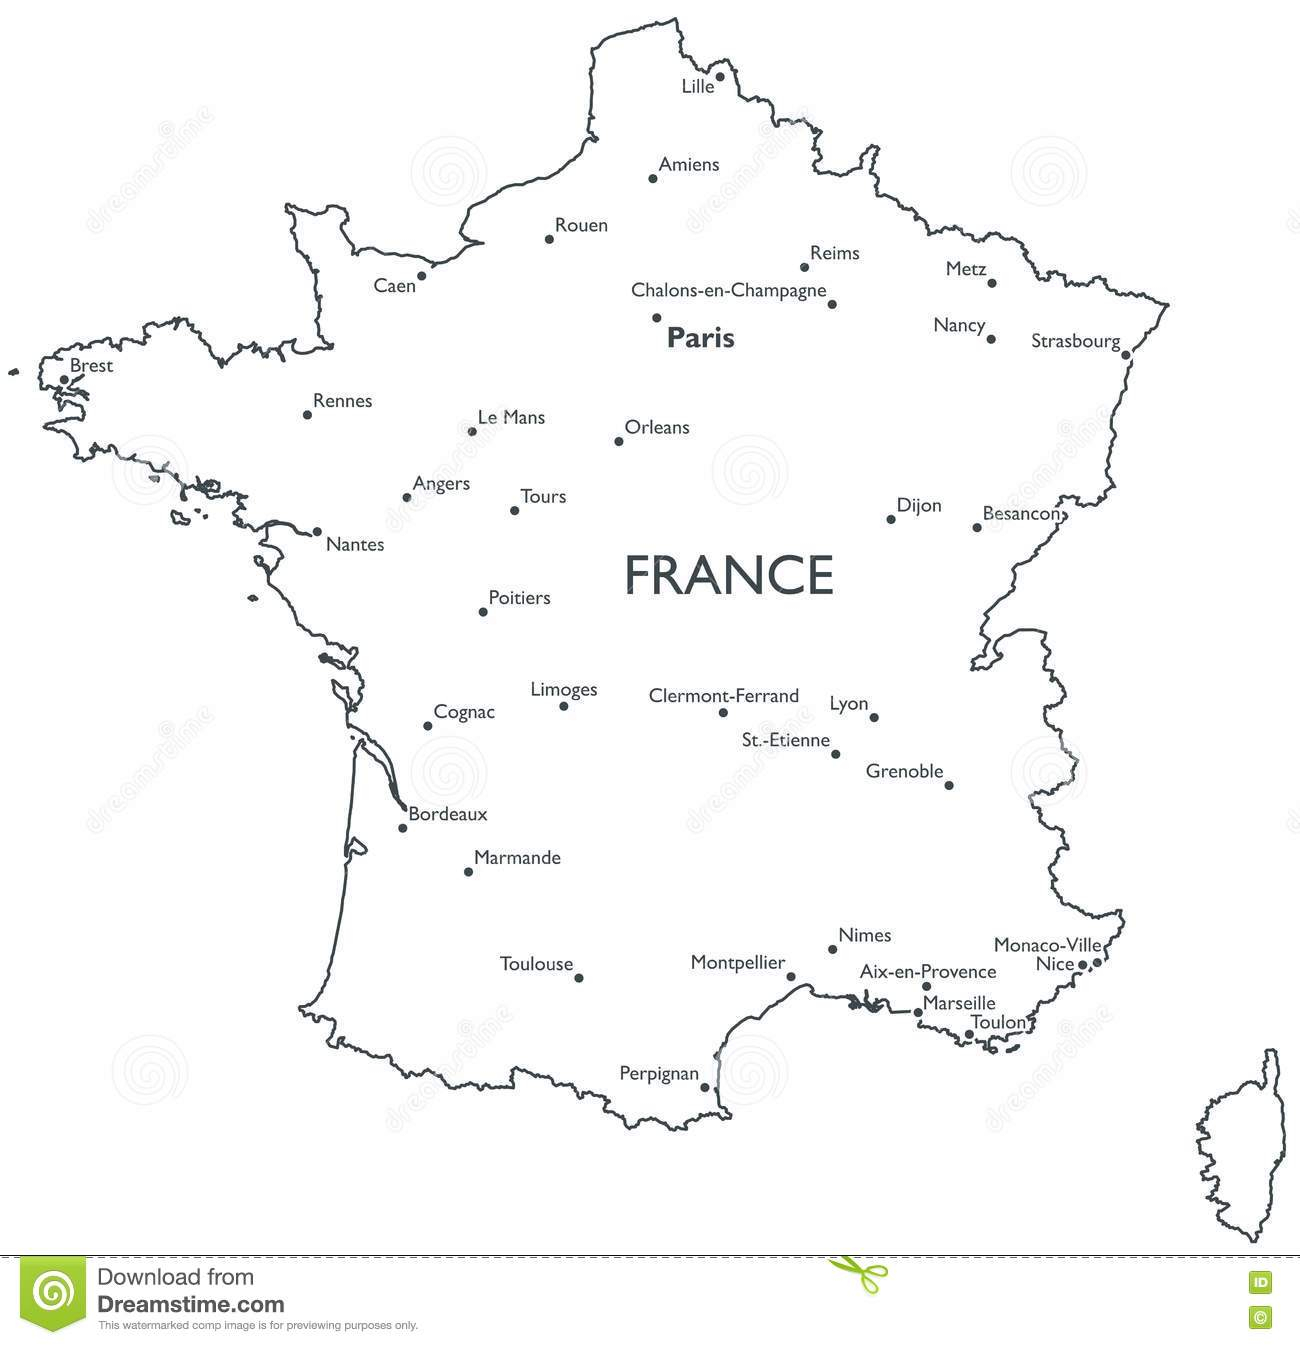 Map Of France With City Names.Vector Map Of France Stock Vector Illustration Of Monochrome 81487298